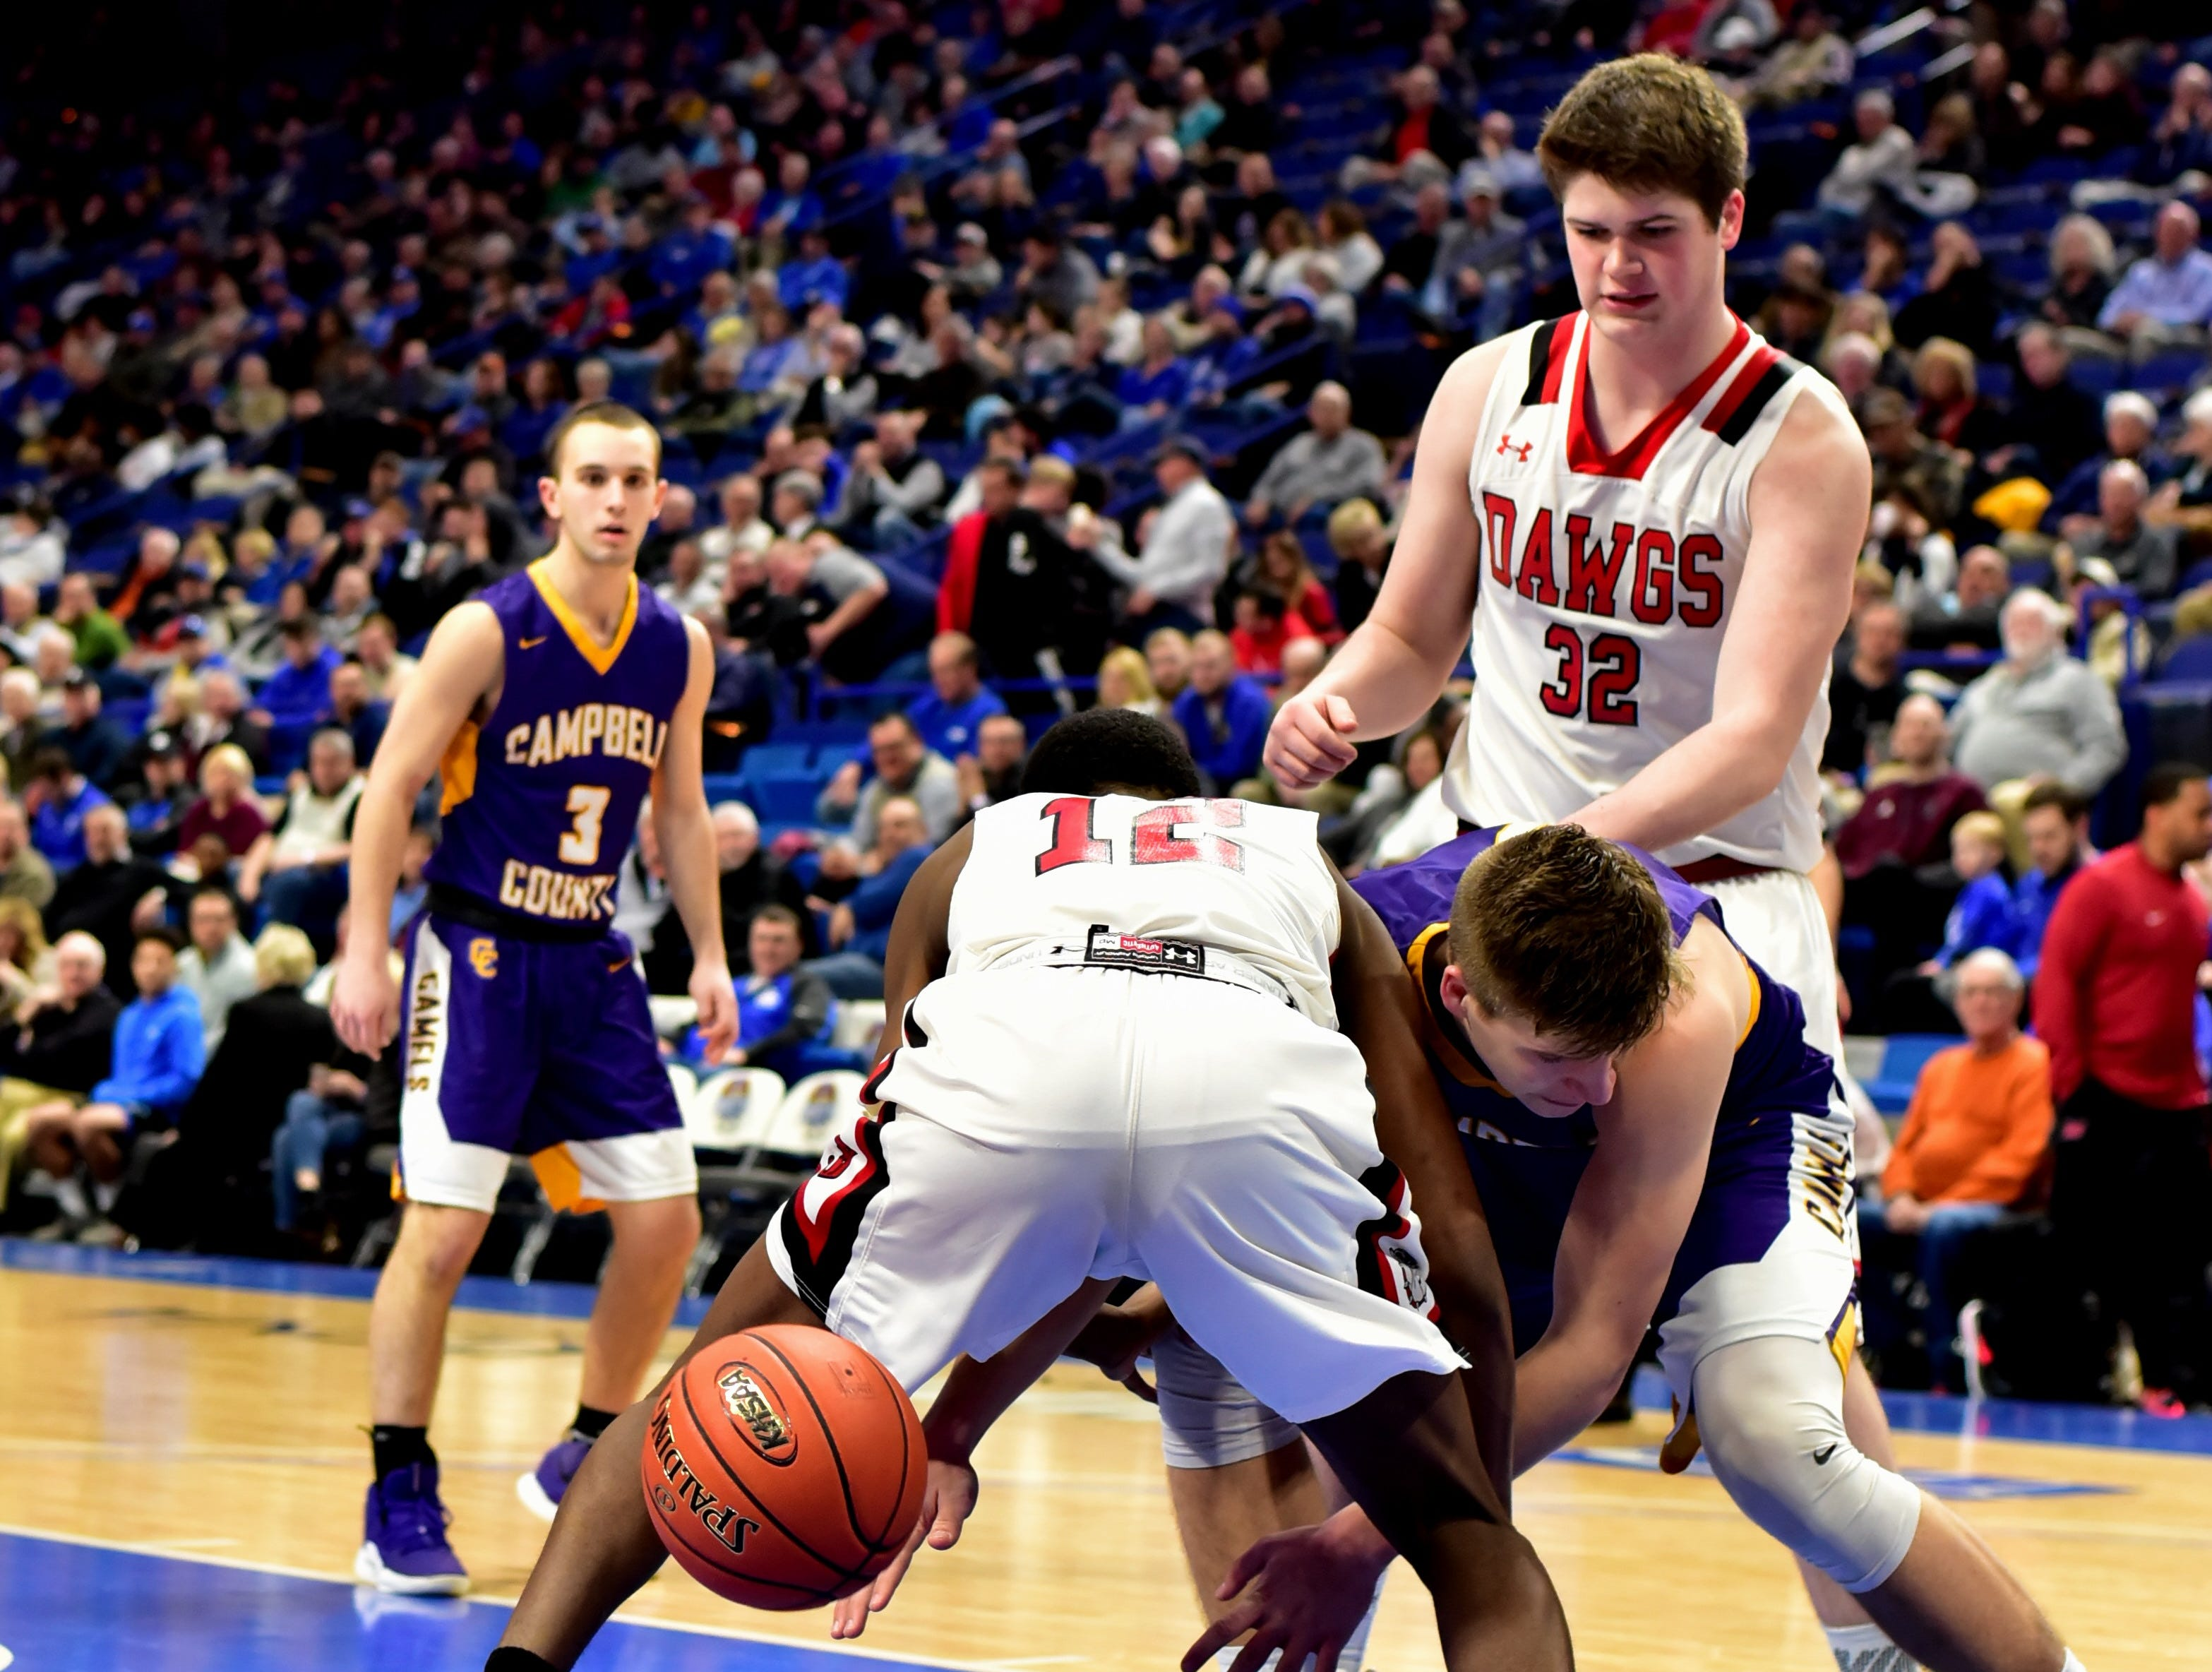 John Hardin and Campbell County find themselves in a fight for possession of the ball late in the game at the KHSAA Sweet 16 Tournament at Rupp Arena in Lexington, KY, March 6, 2019